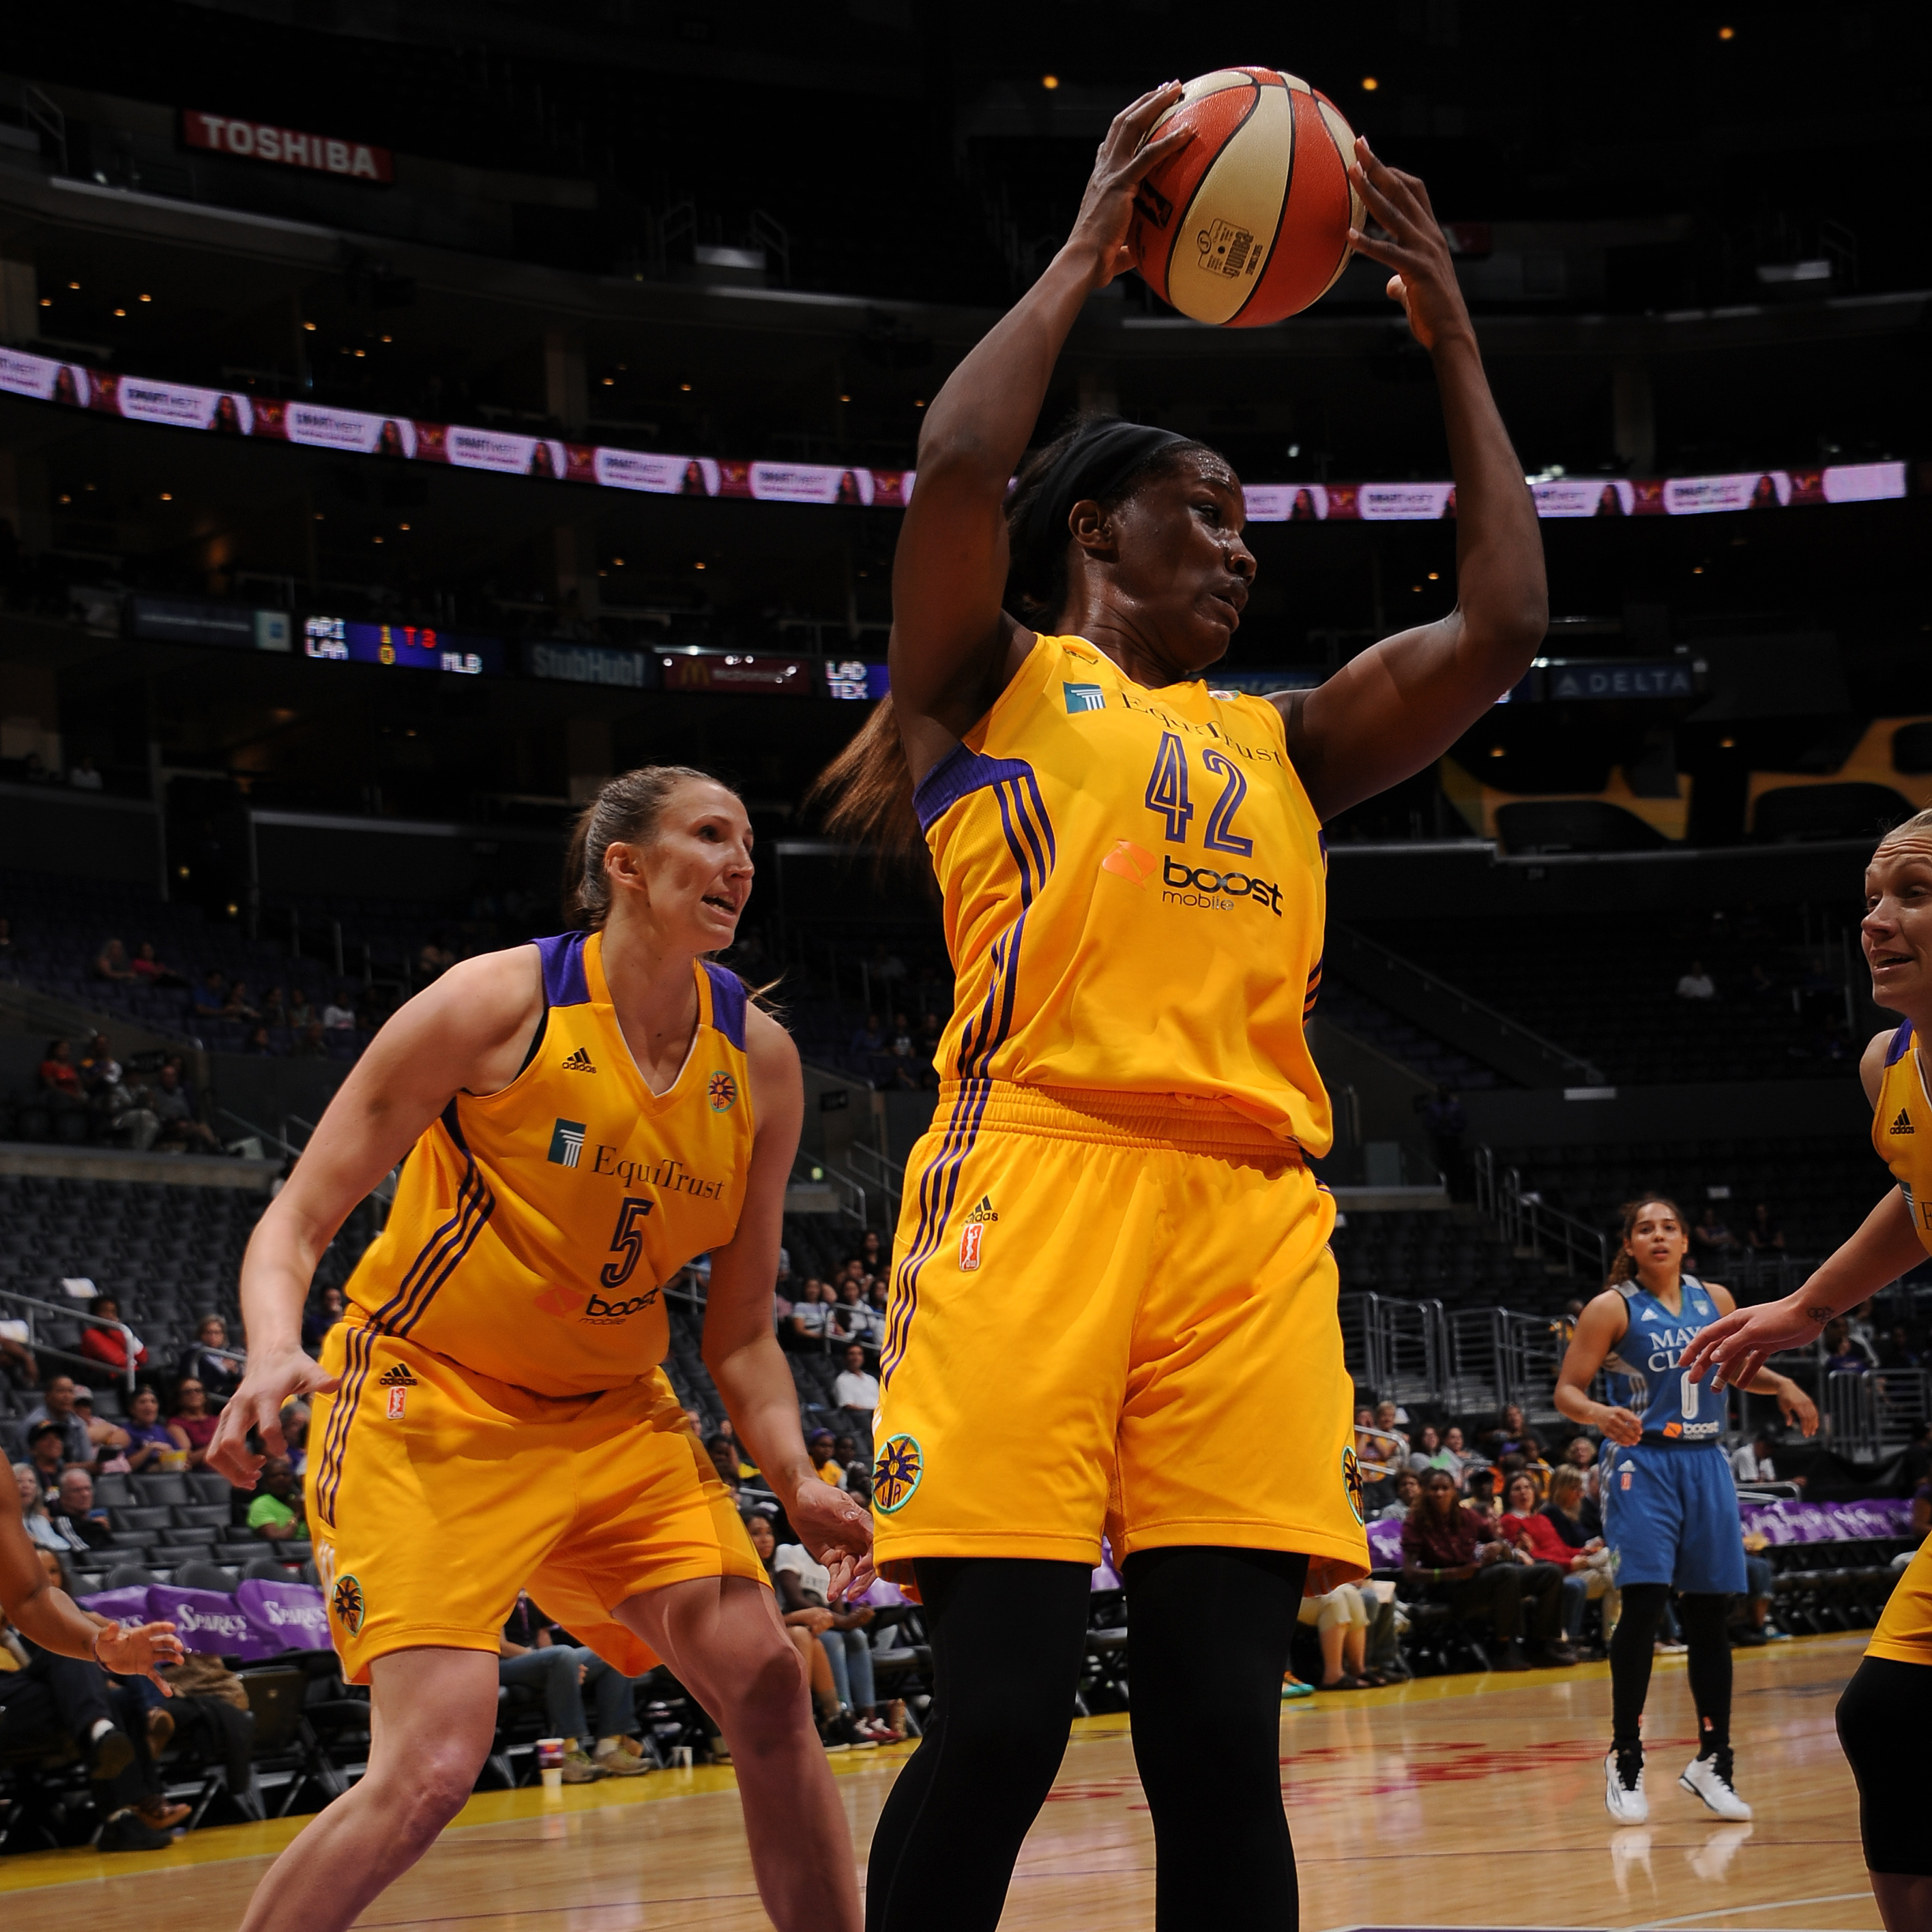 Sparks center Jantel Lavender grabbed her second double-double of the season finishing with 12 points and 13 rebounds.